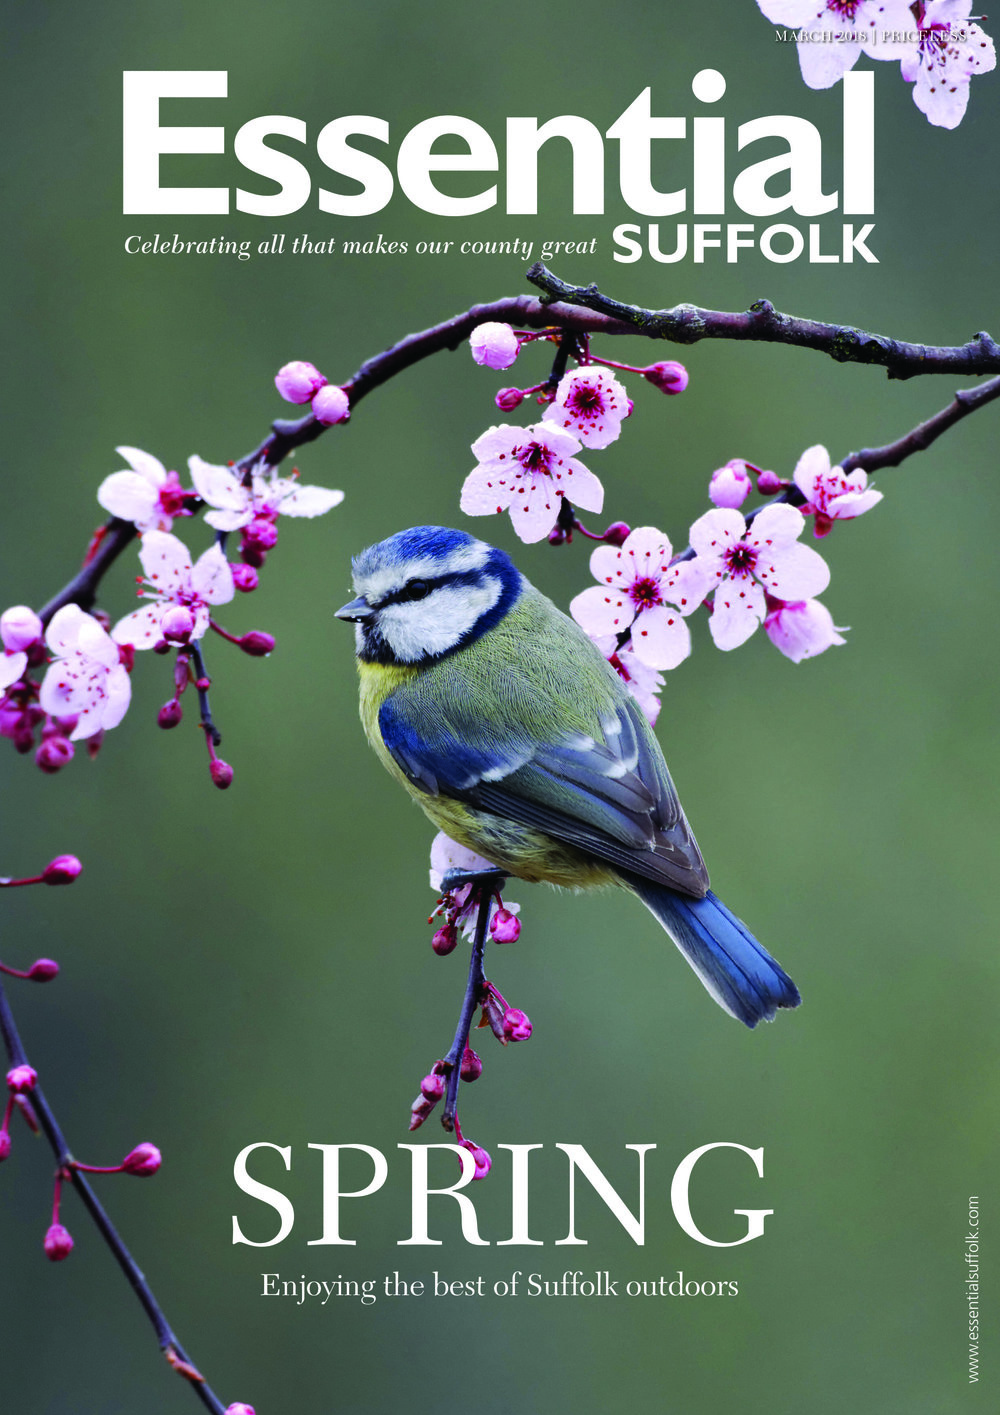 Essential Suffolk March 2018